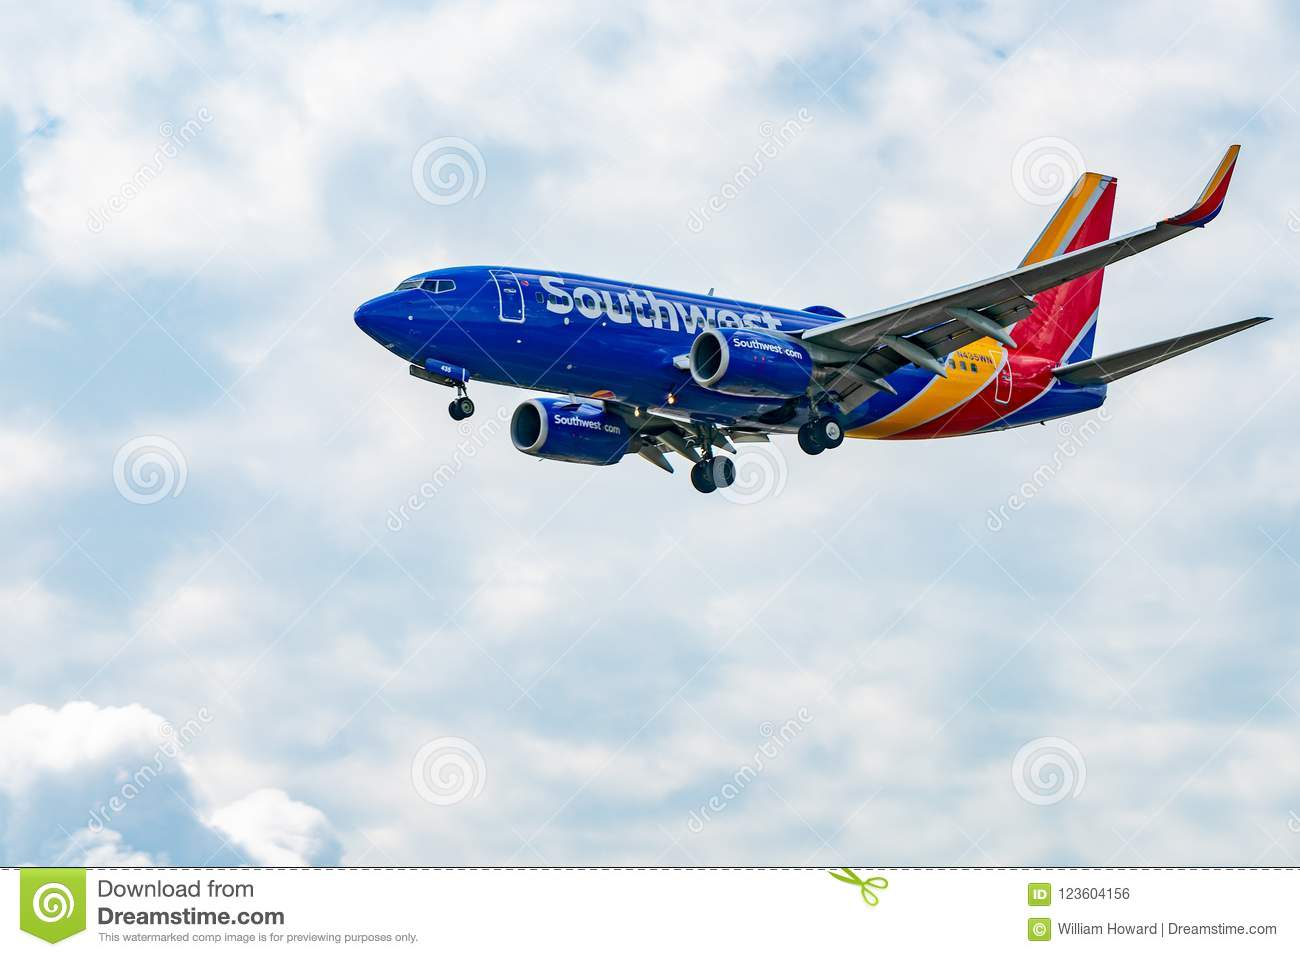 Southwest Airlines Boeing 737 Takes Off Editorial Photo - Image of